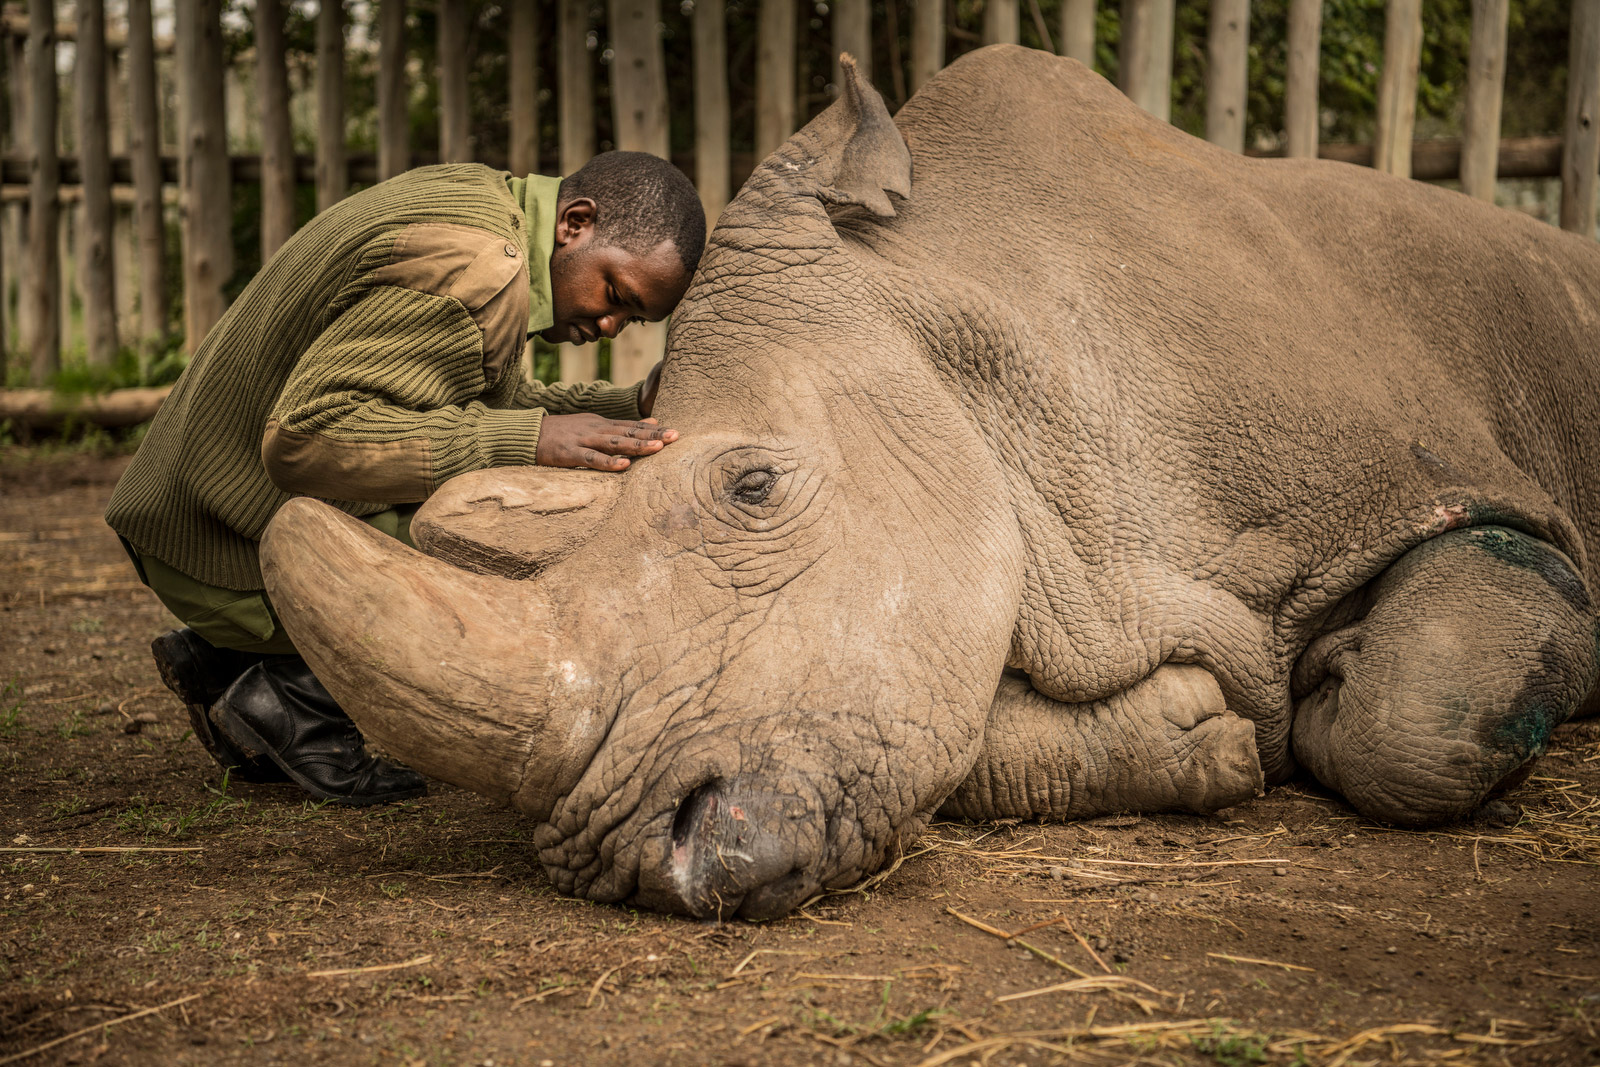 Joseph Wachira comforts Sudan, a northern white rhino, moments before he died Monday at the Ol Pejeta Conservancy in Kenya.